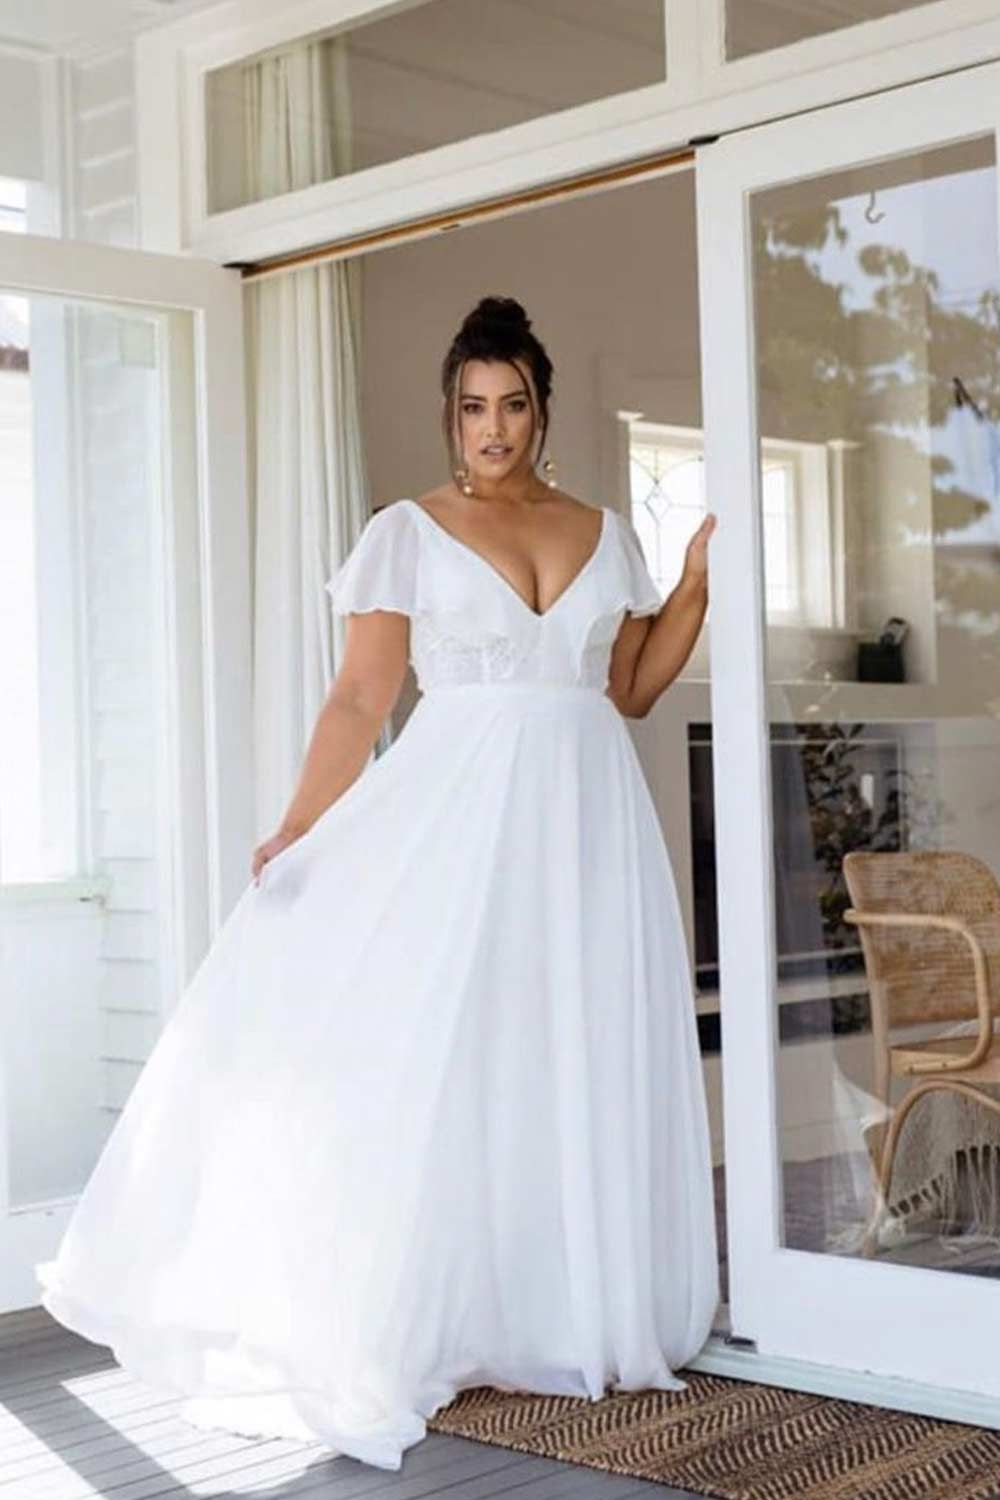 Plus Size Wedding Dresses For The Most Beautiful And Curvy Brides Plus Wedding Dresses Wedding Dresses Plus Size Summer Wedding Dress [ 1500 x 1000 Pixel ]